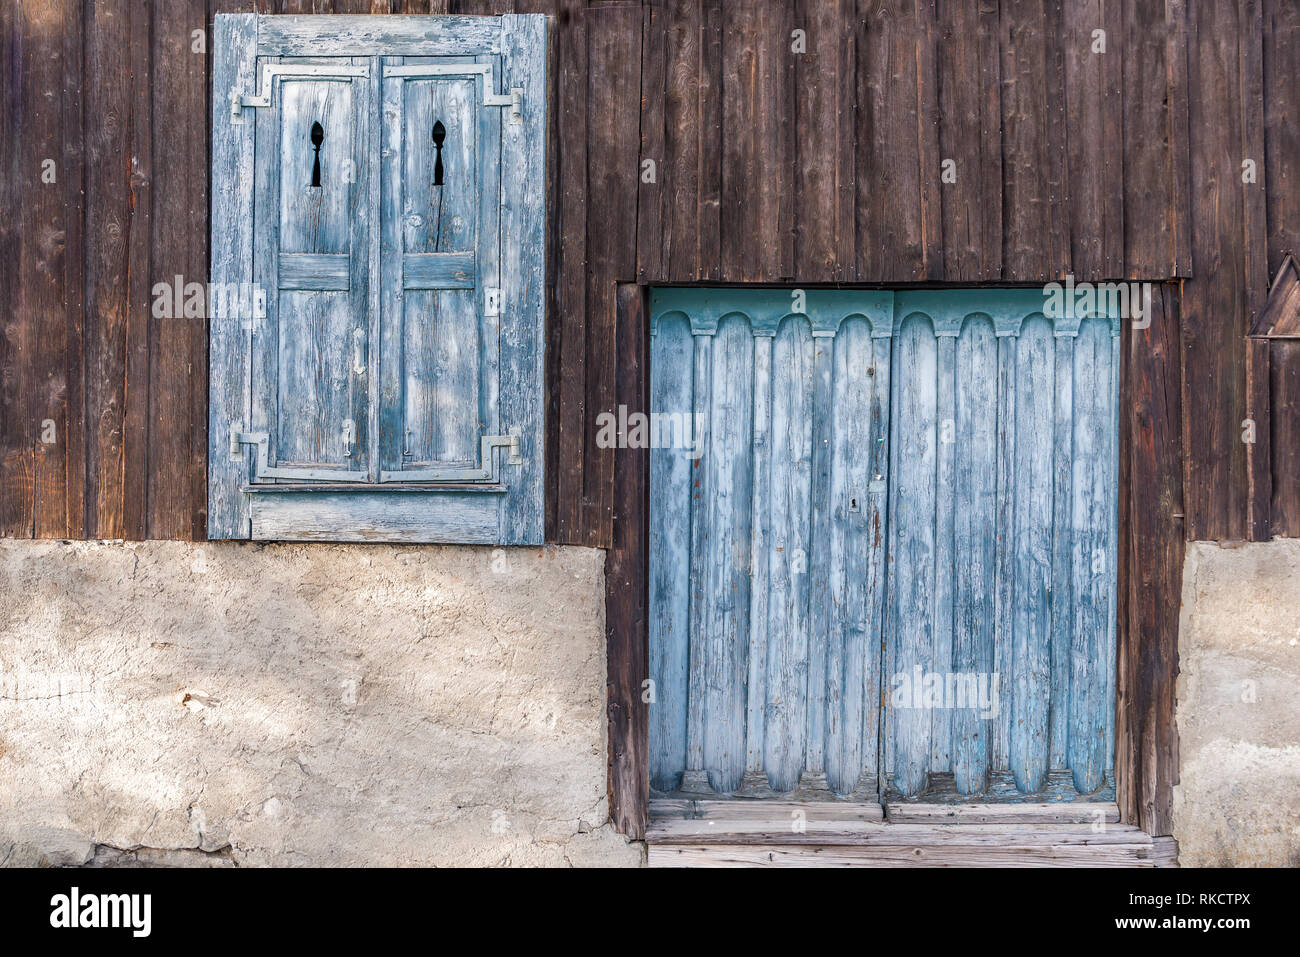 Traditional Wood Joinery Window Shutters And Door Of Wooden